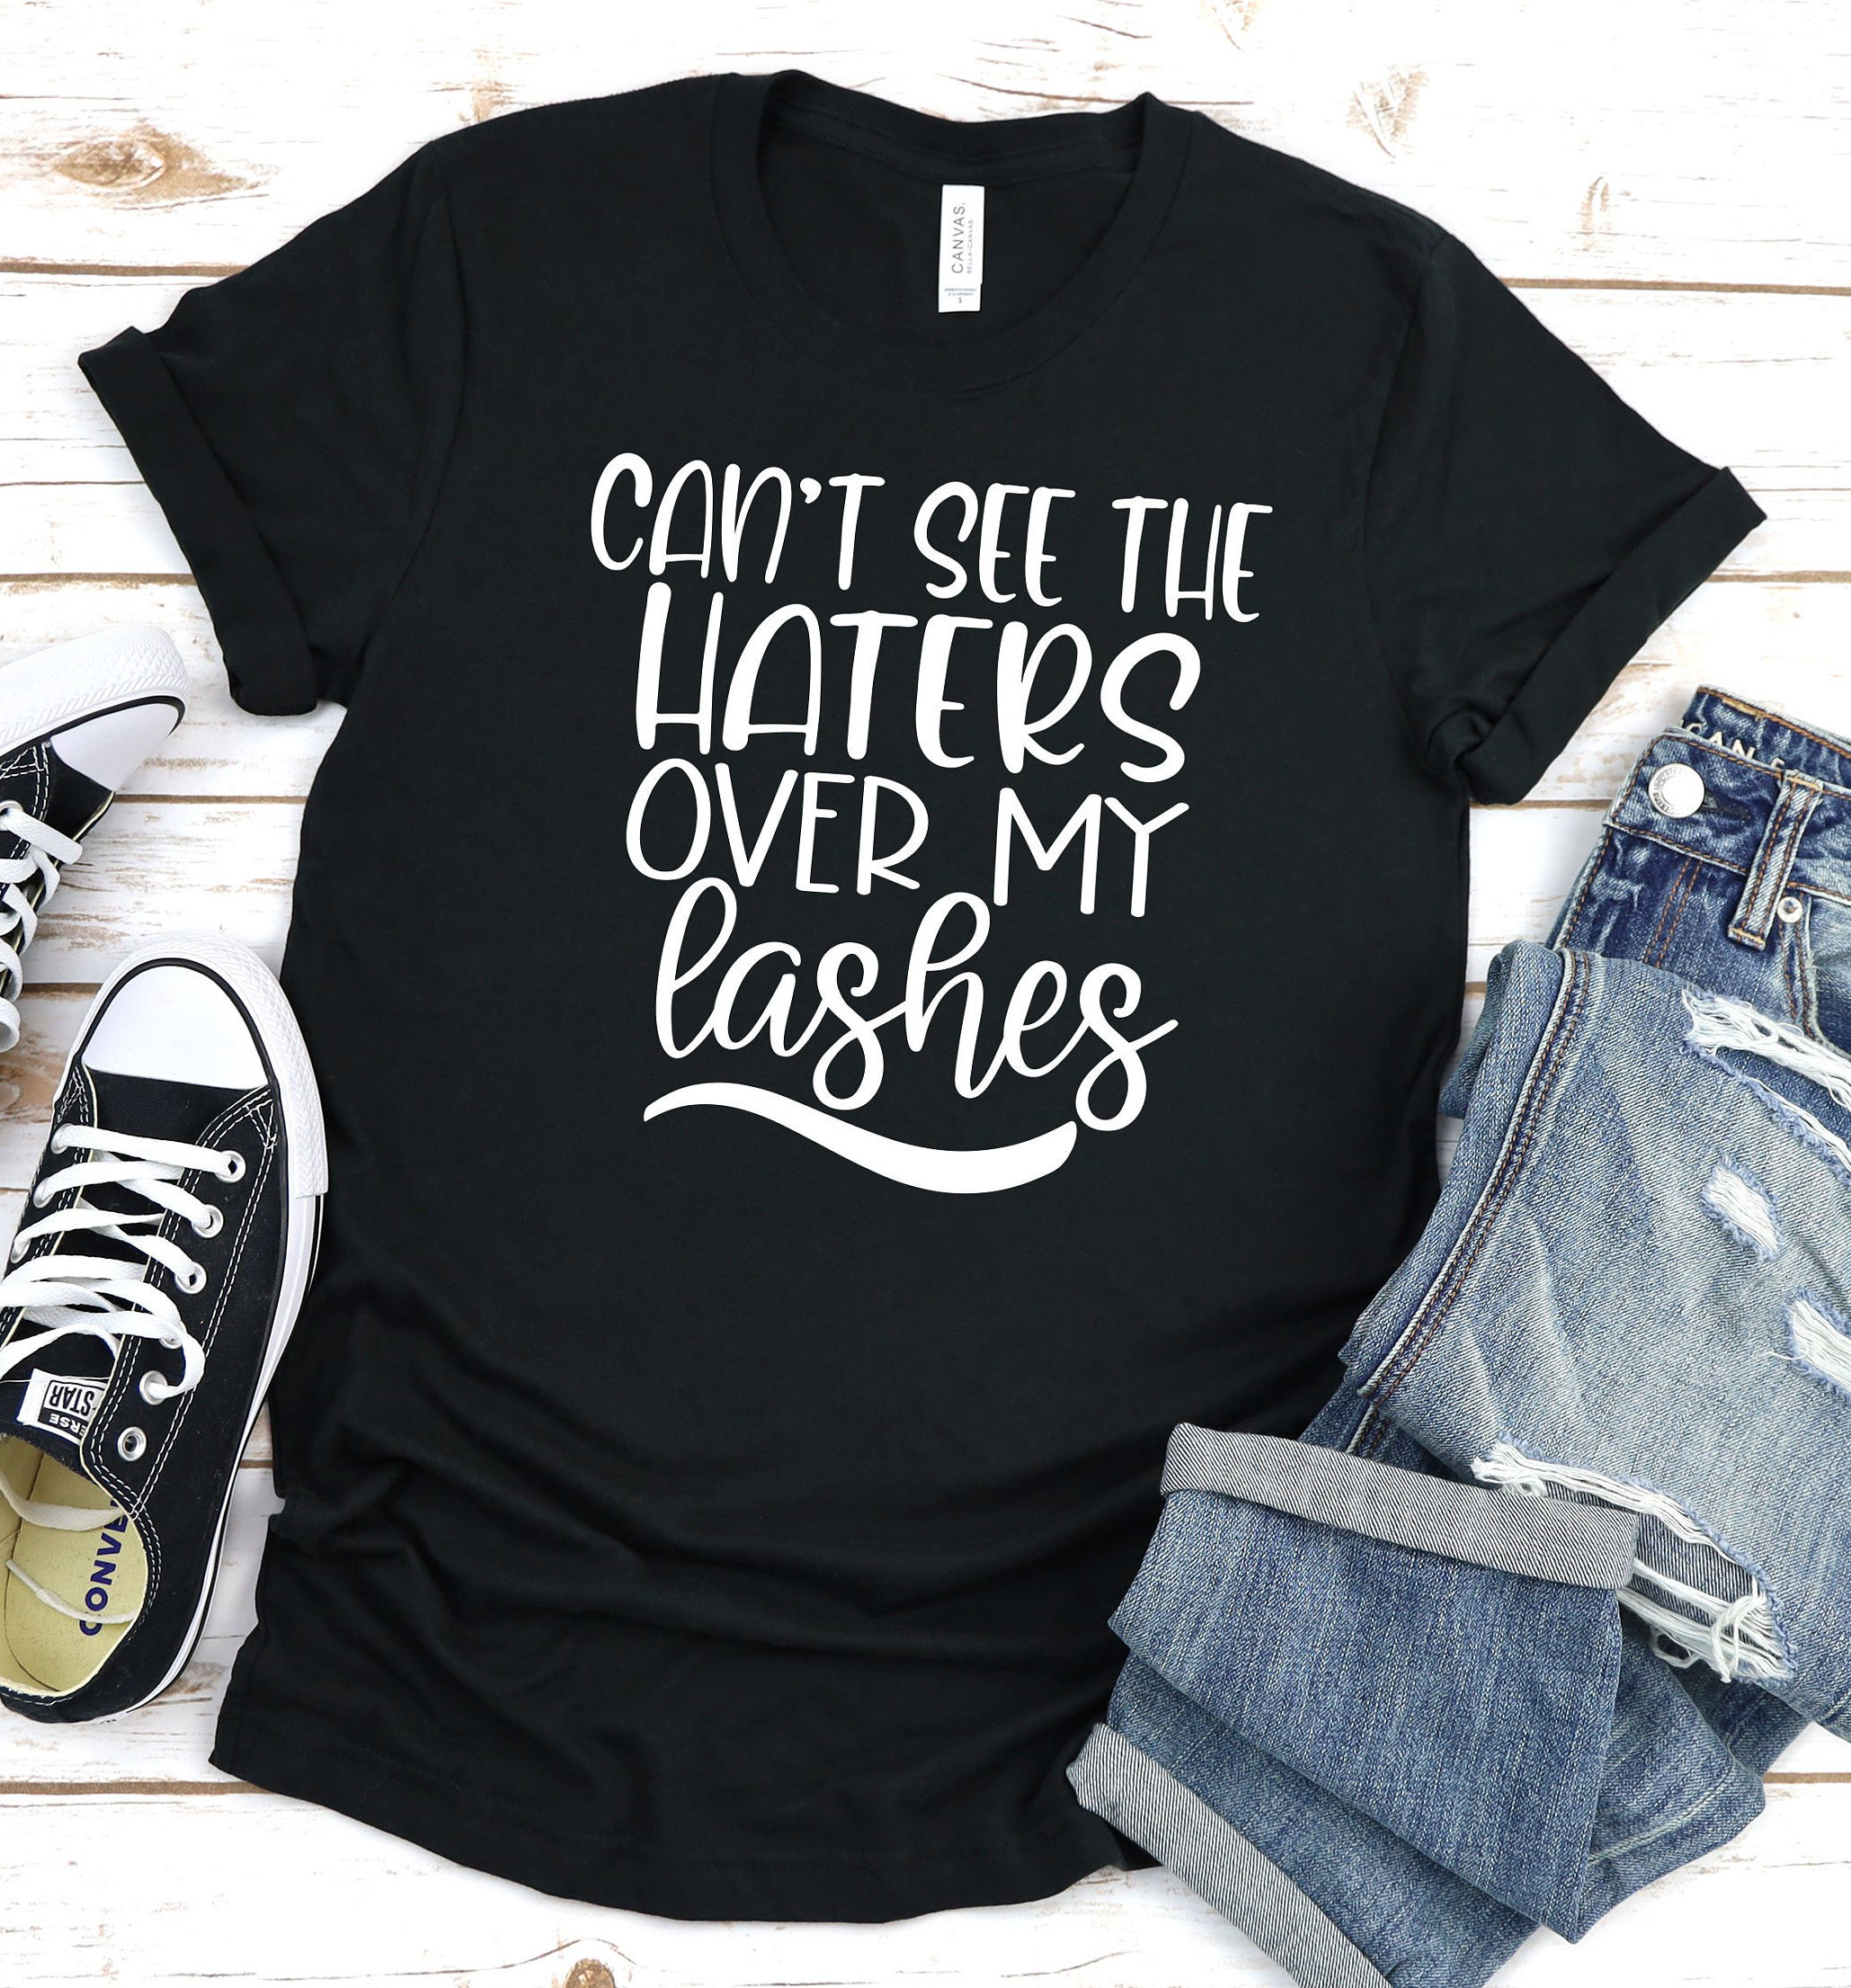 Cant-see-the-haters-over-my-lashes-svg-makeup-love-svg-mascara-svg-lashes-svg-lash-svg-makeup-svg-designs-makeup-cut-file-cricut-svg-600a0ab3